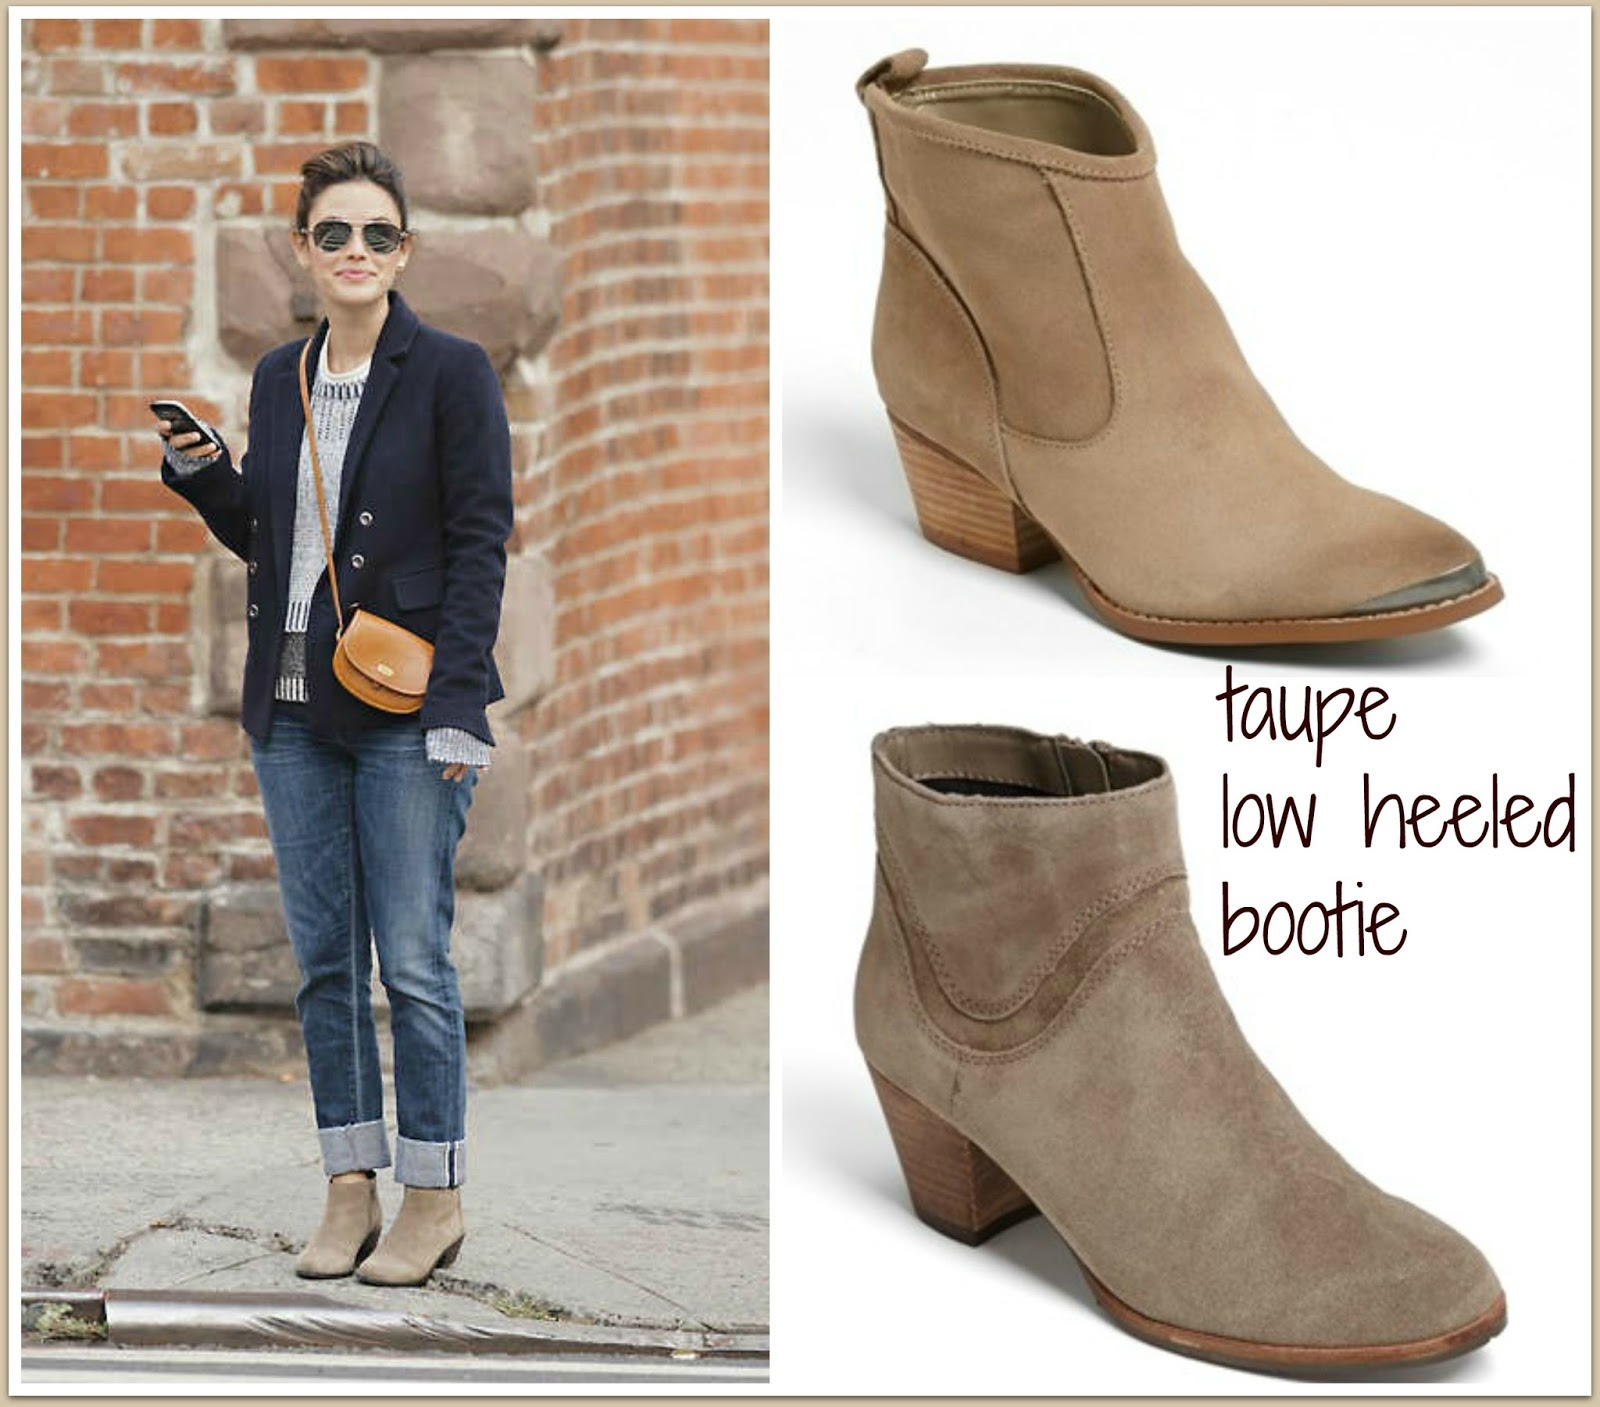 Taupe Kombinieren booties 101 your comprehensive guide to booties sheaffer told me to